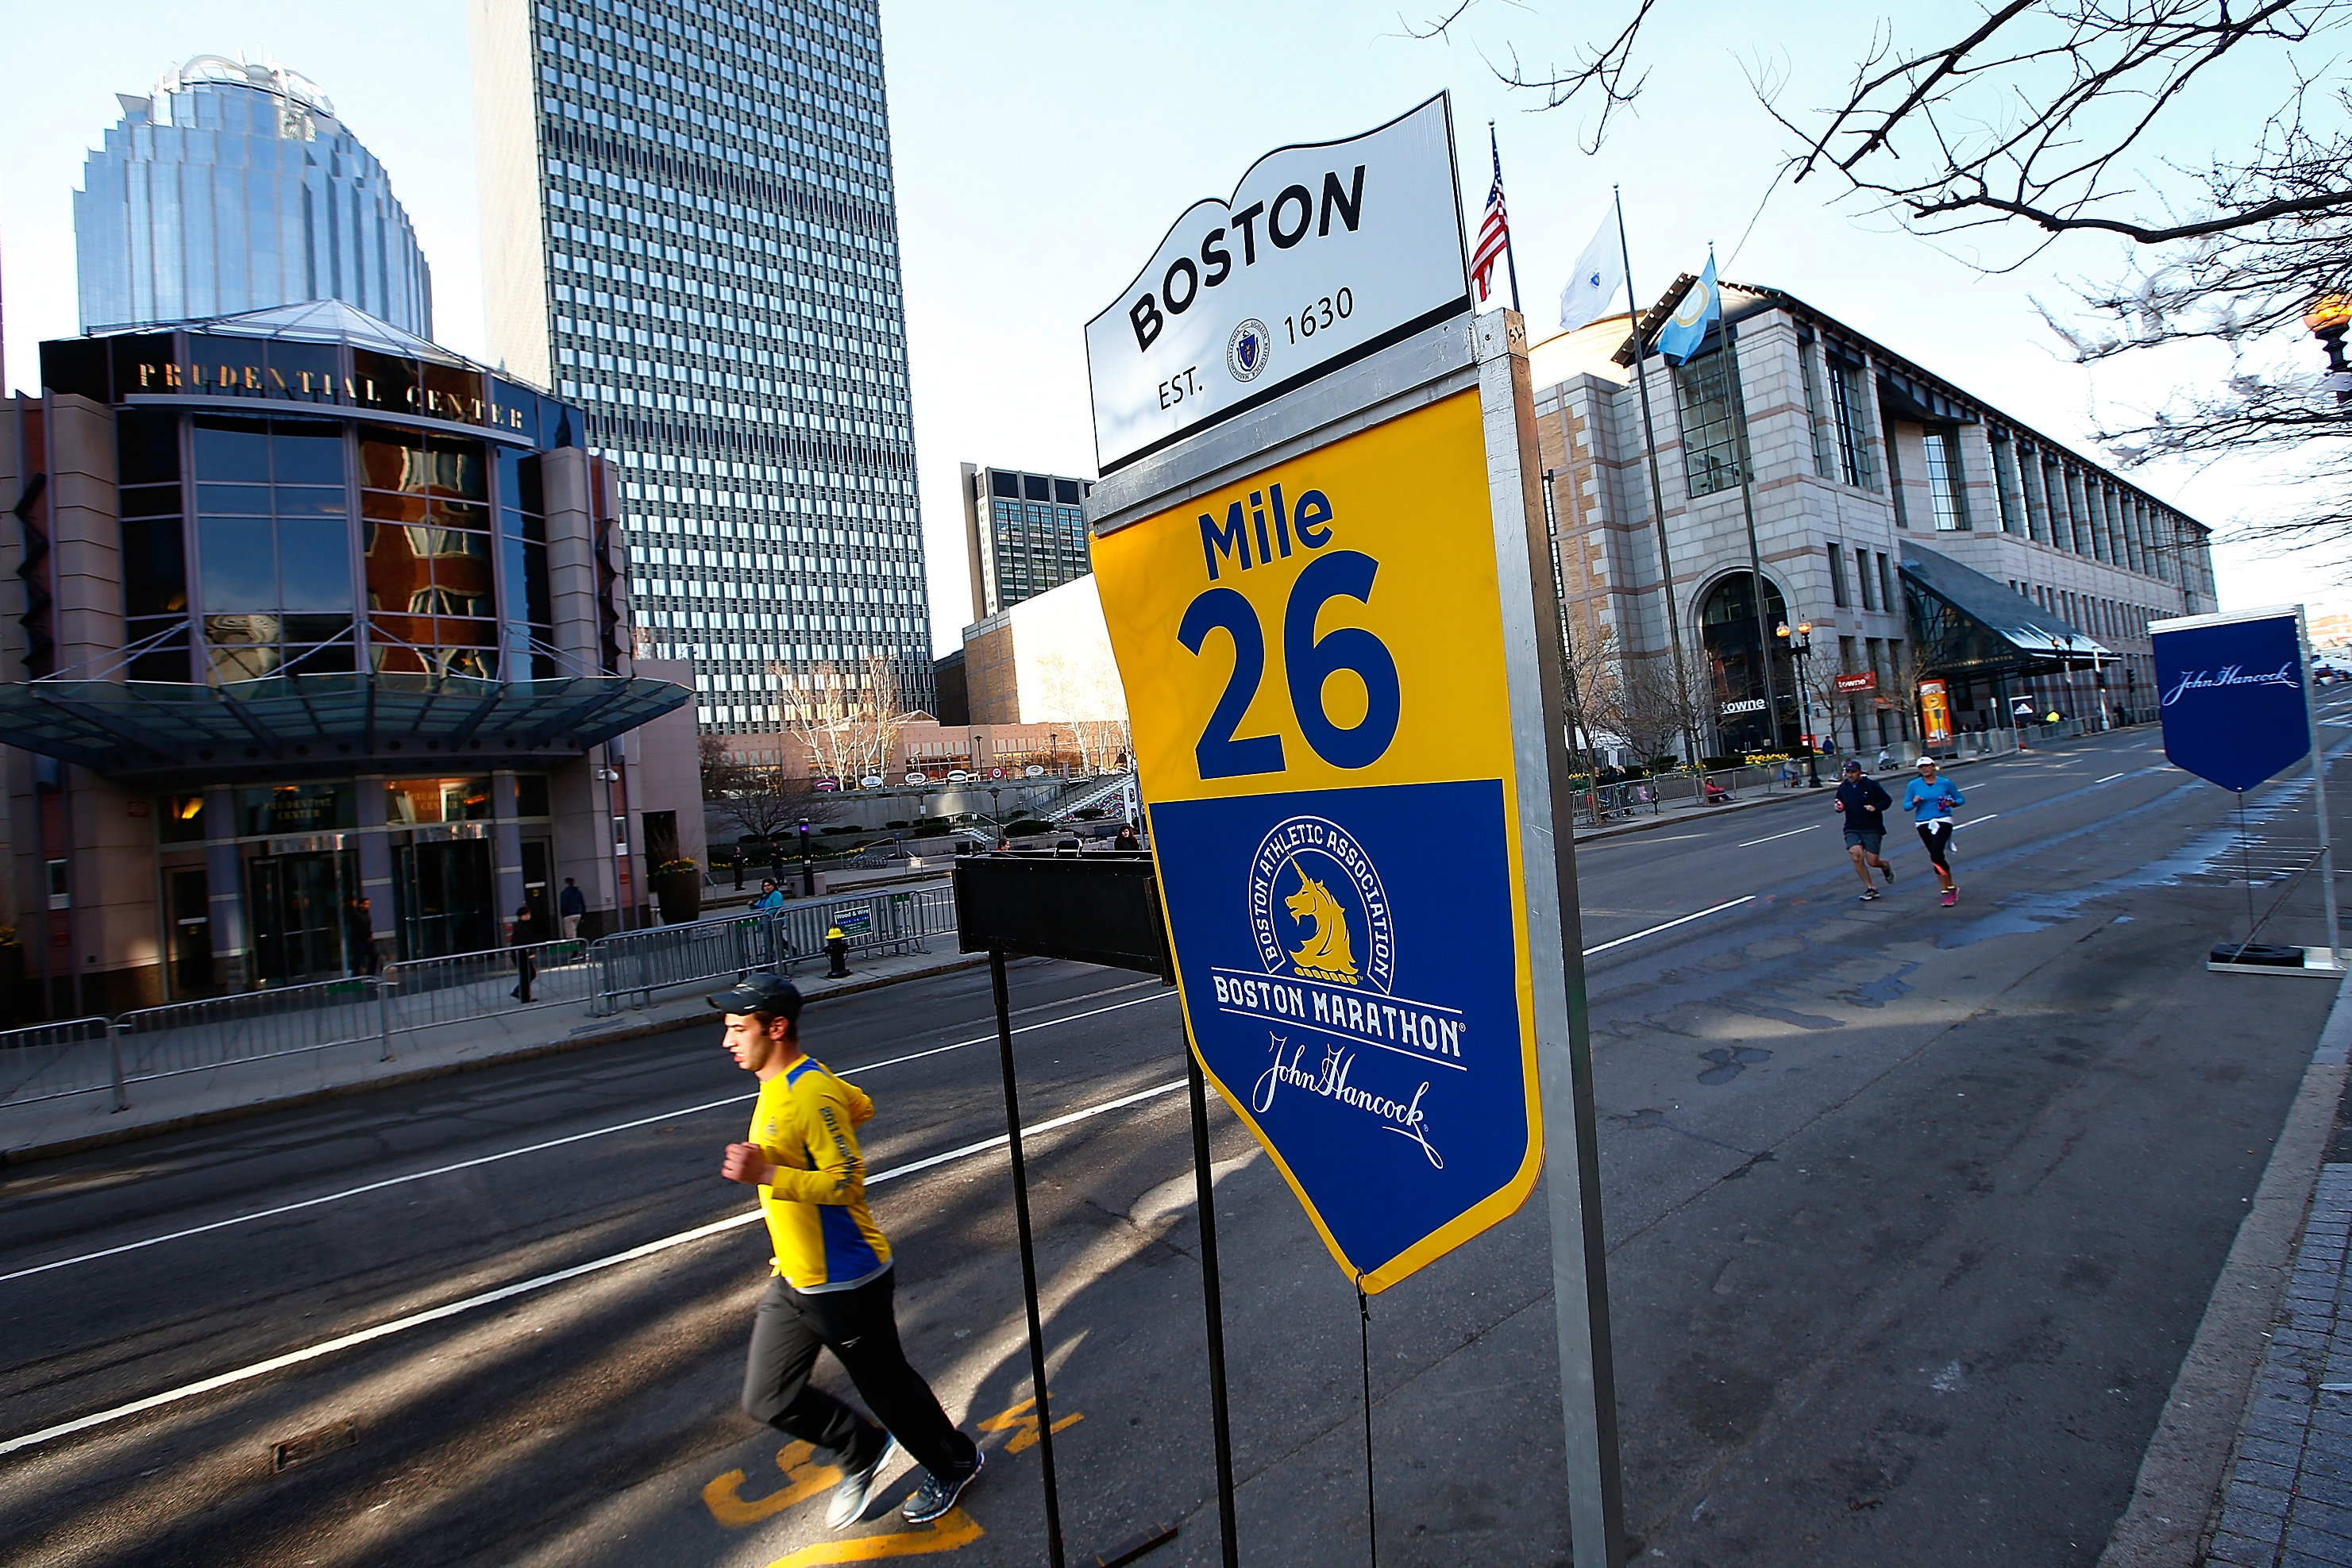 A few people run along Boylston Street near the 26 mile marker prior to the start of the Boston Marathon.